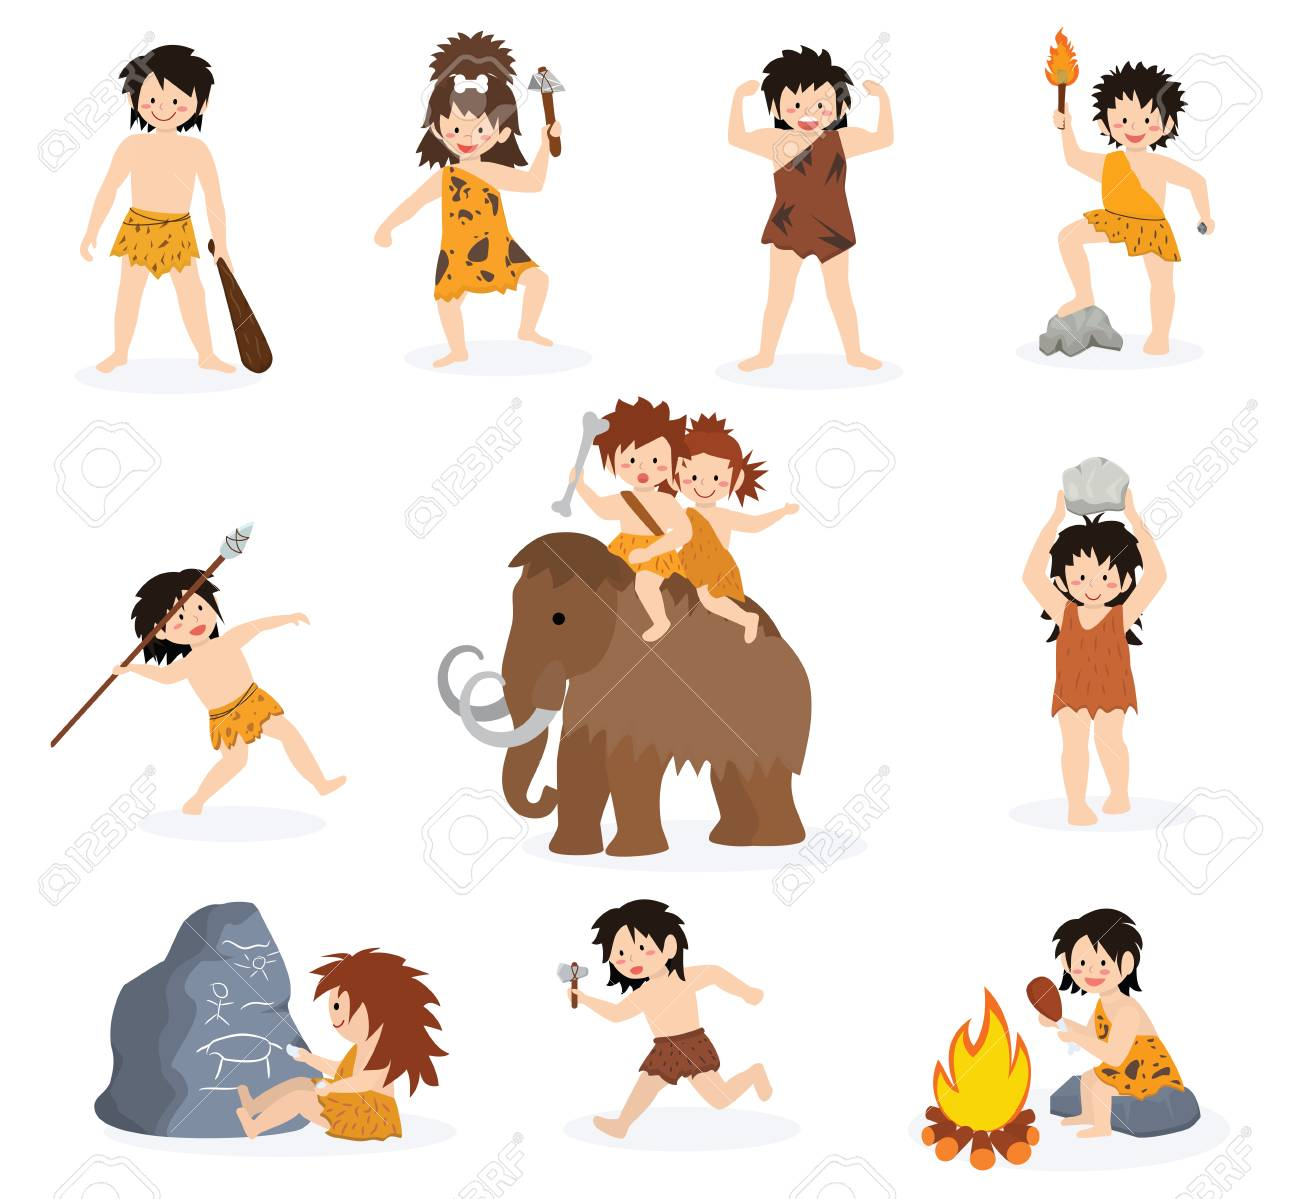 Caveman kids vector primitive children character and prehistoric child with stoned weapon on mammoth illustration. Set of ancient boy or girl in stone age isolated on white background. - 100976027